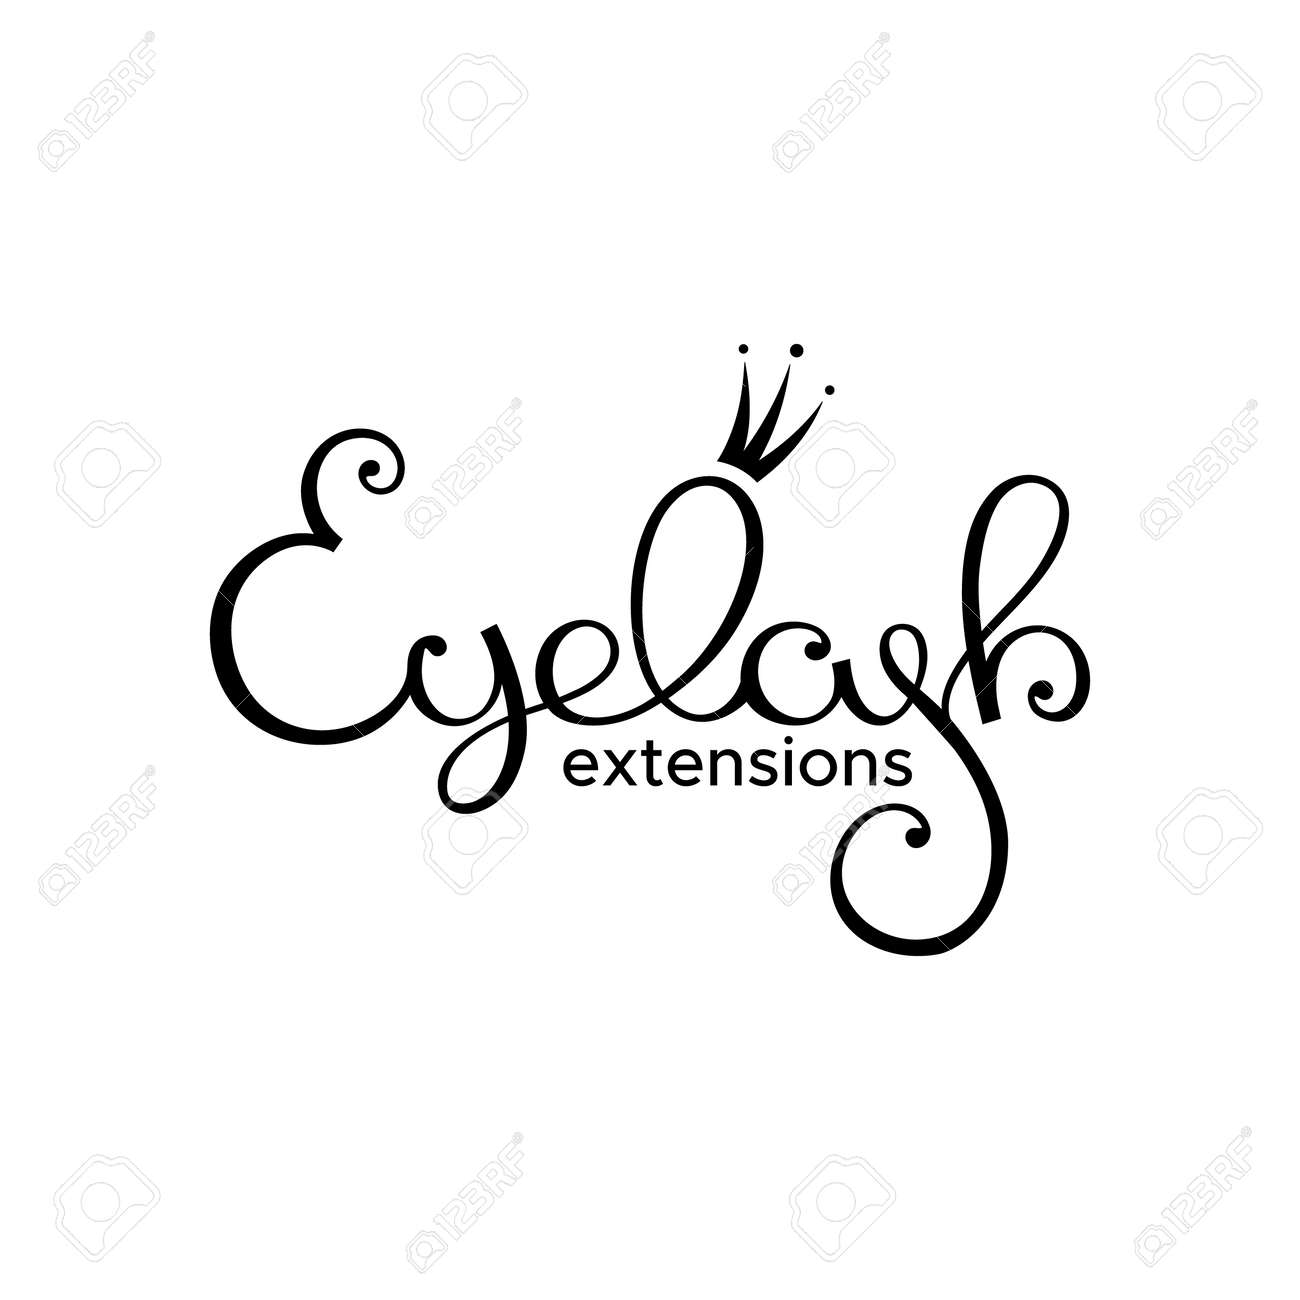 Eyelash extension logo. Style with a stylized hand-drawn lettering, calligraphy. - 89704253